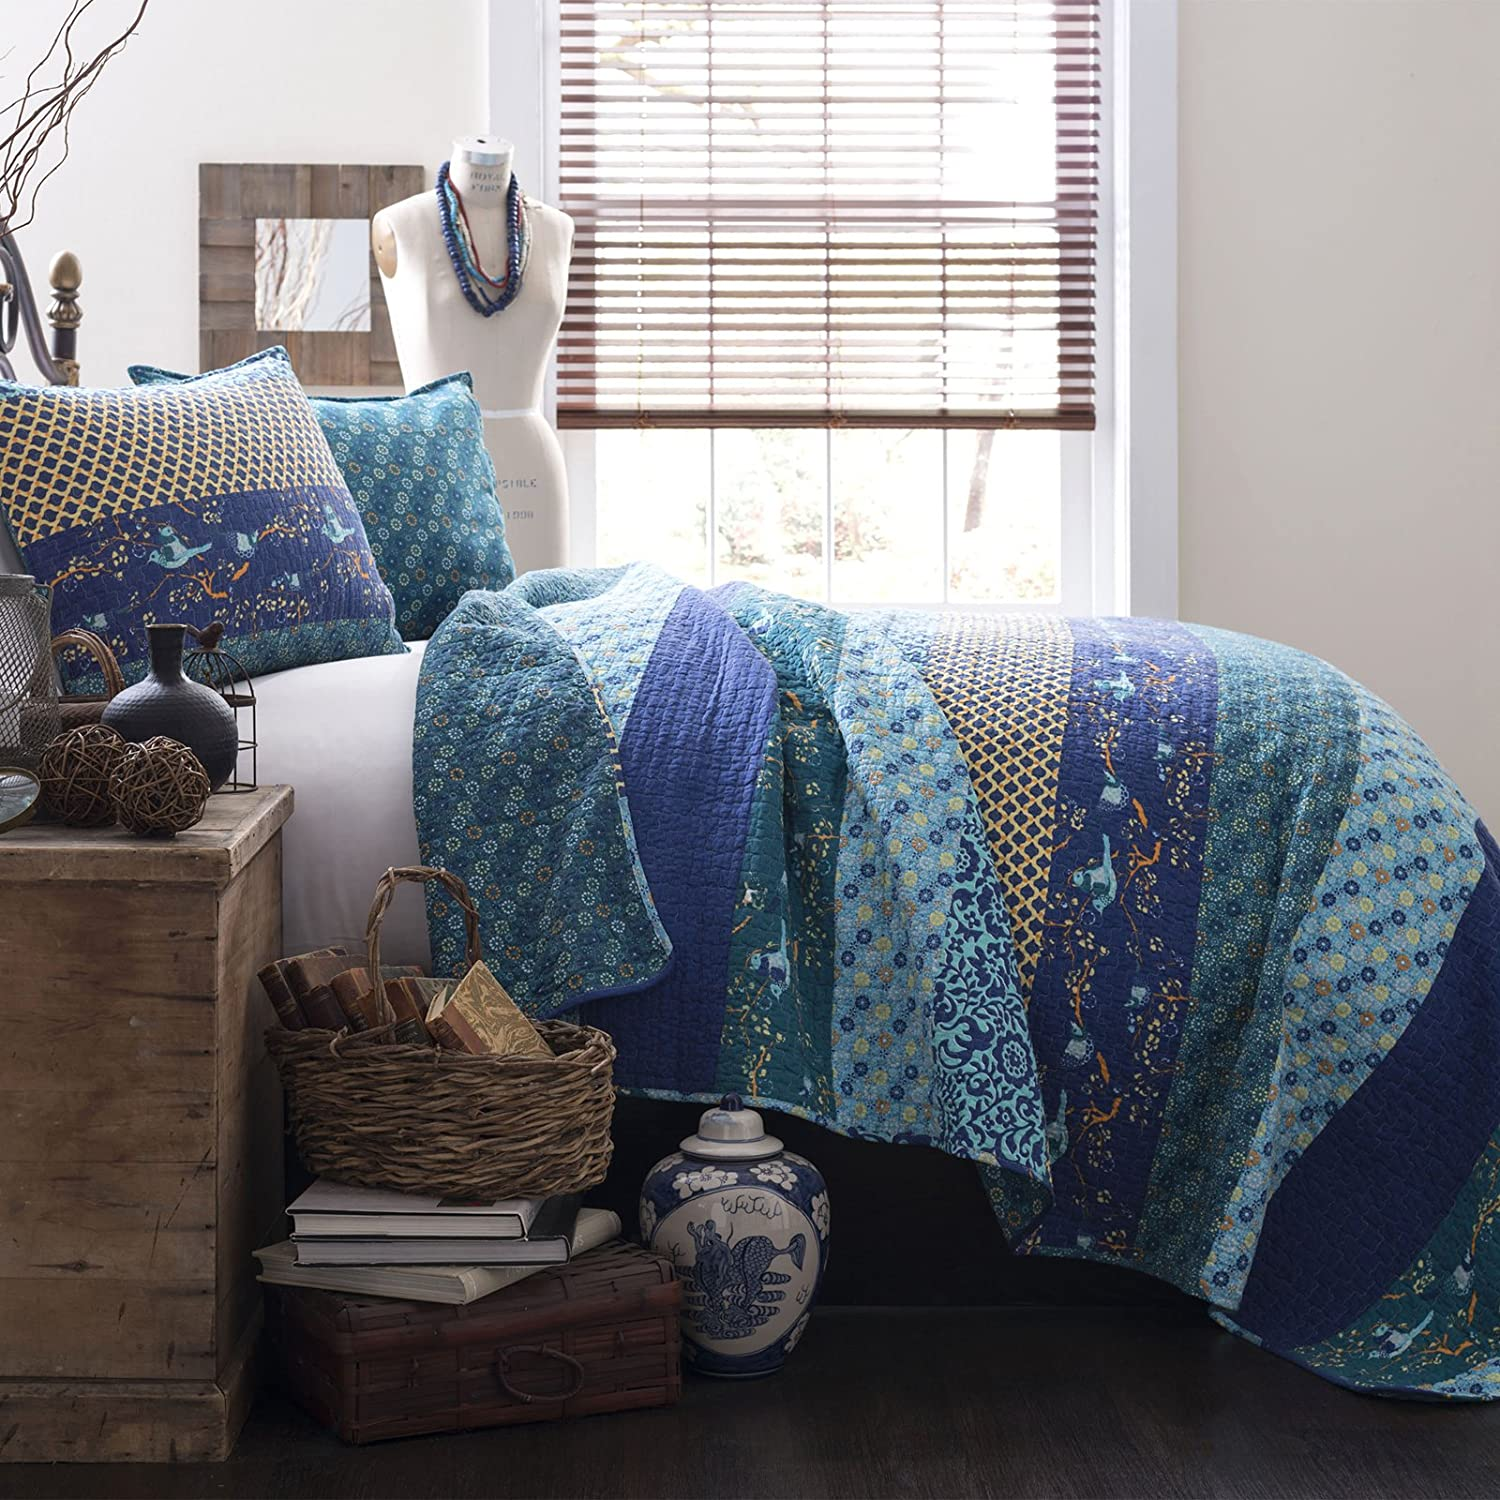 Peacock bedroom set - Peacock Bedding Sets